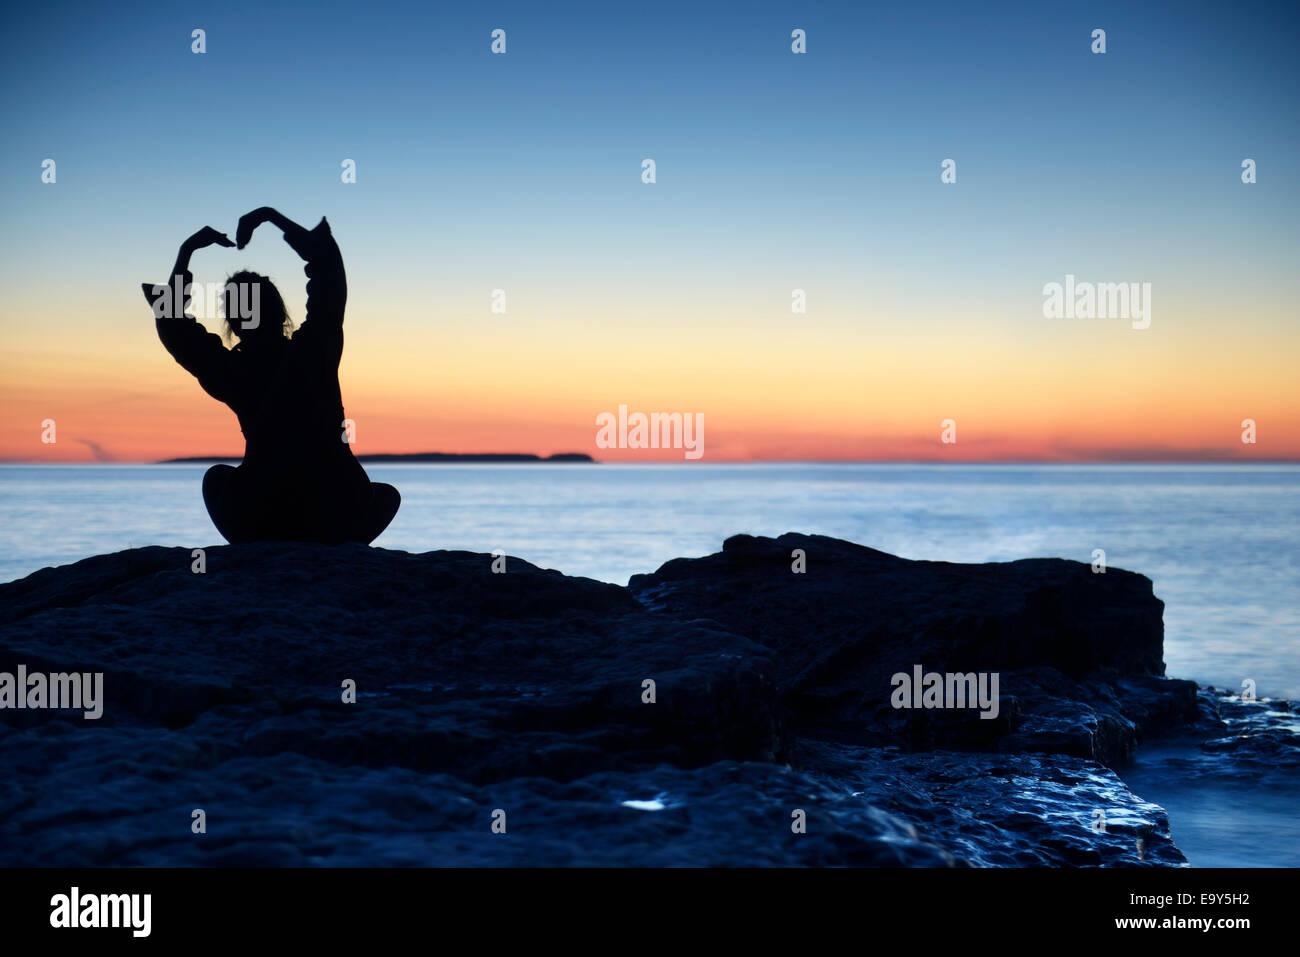 Silhouette of a woman sitting alone an a shore at sunset with her hands raise in a shape of a flower above her head, - Stock Image